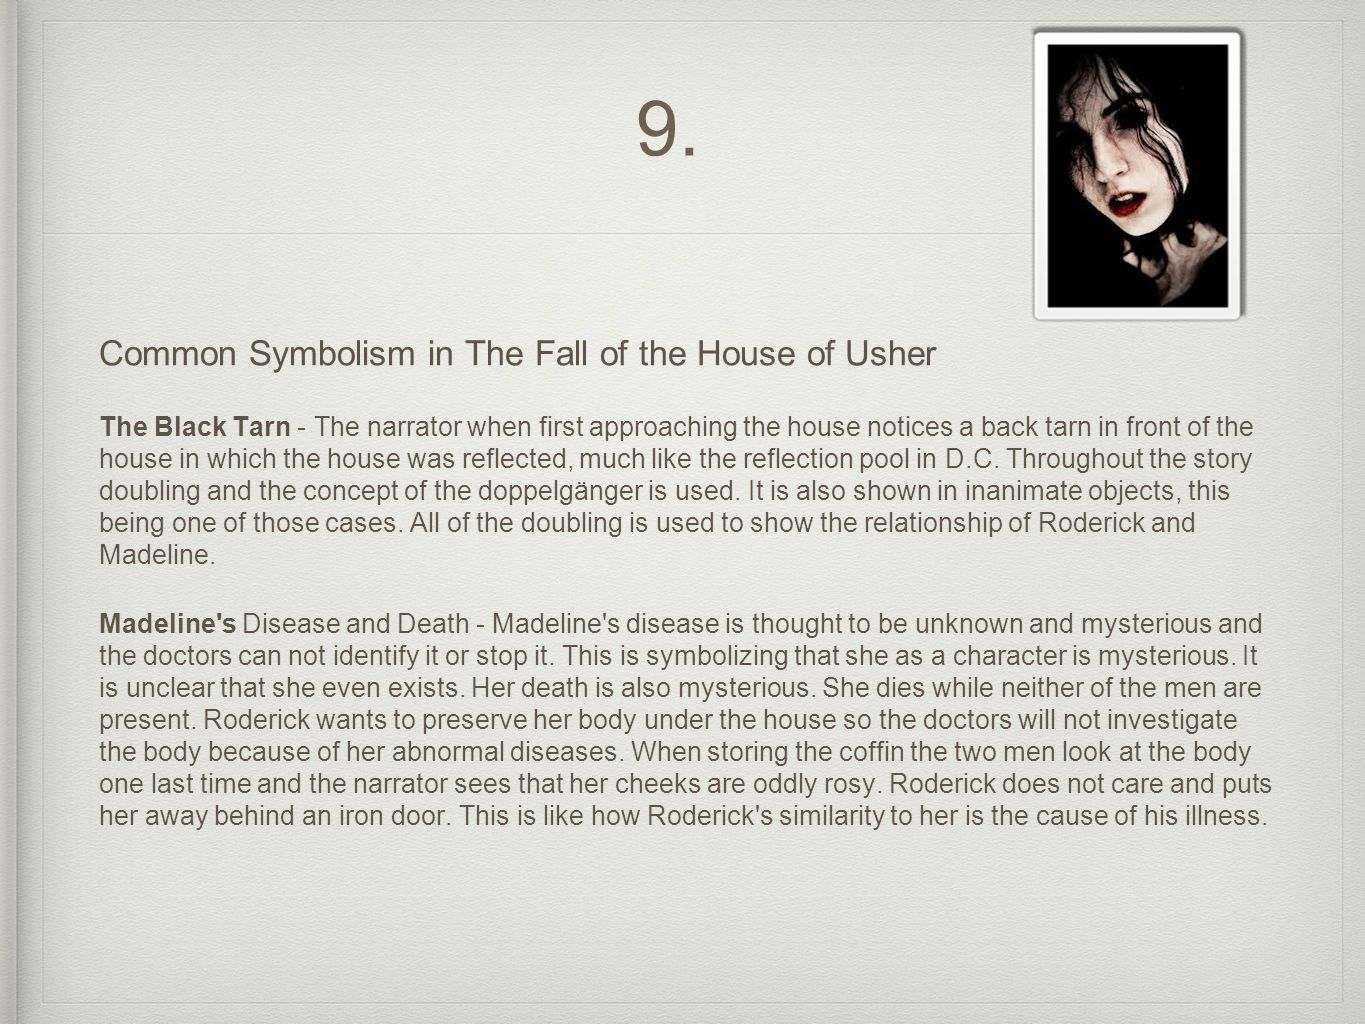 The Fall of the House of Usher, Edgar Allan Poe - Essay